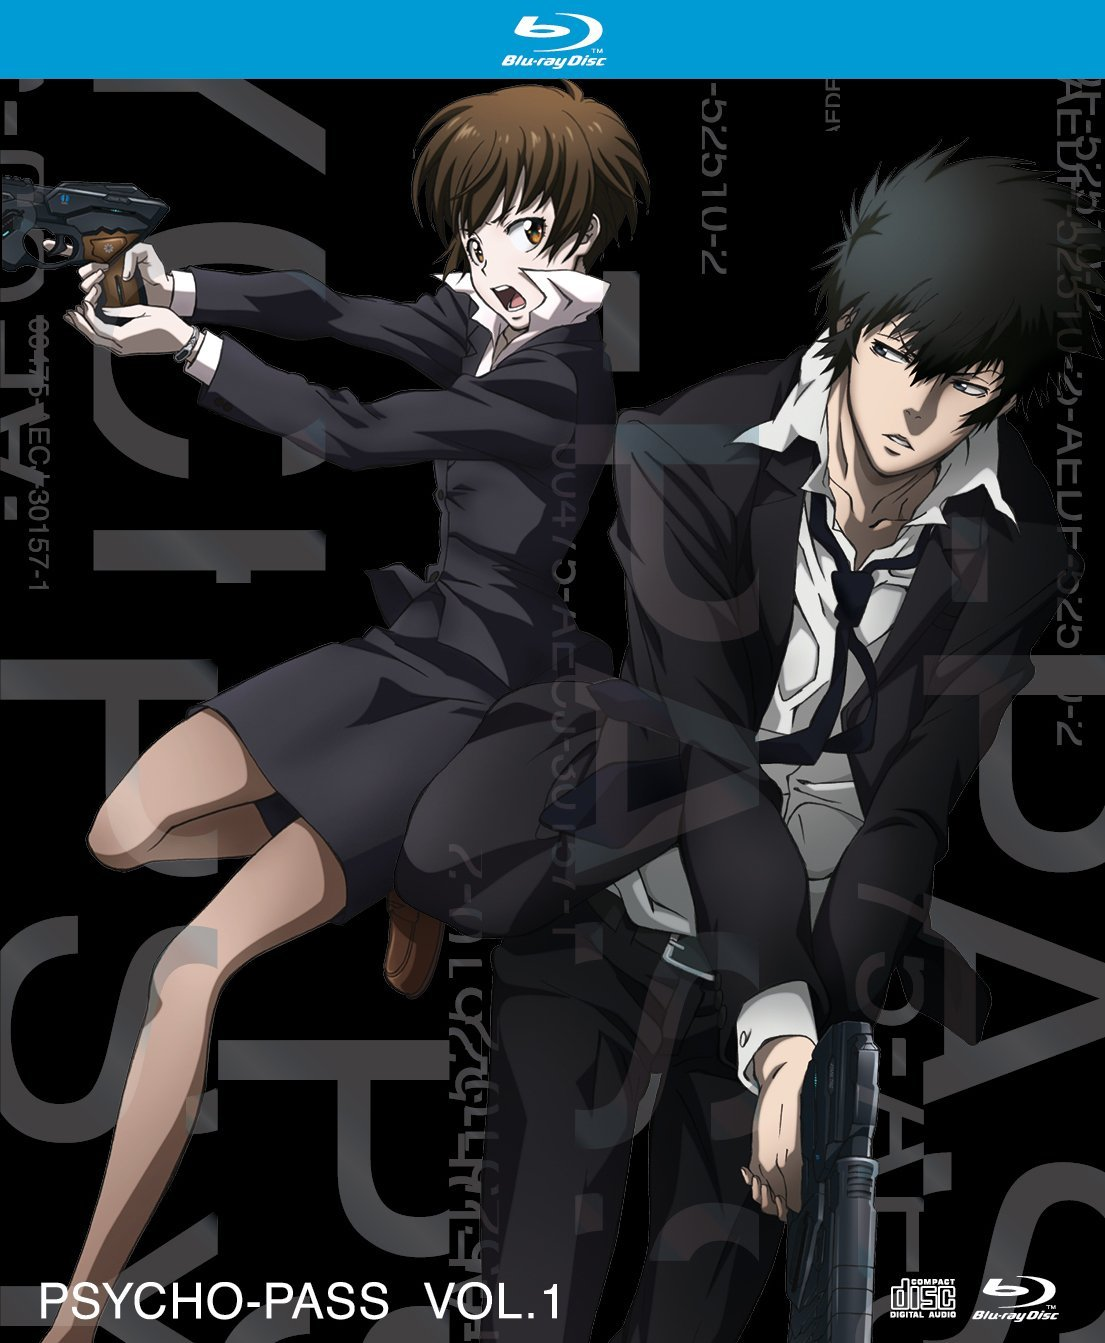 psycho-pass blu-ray box 1